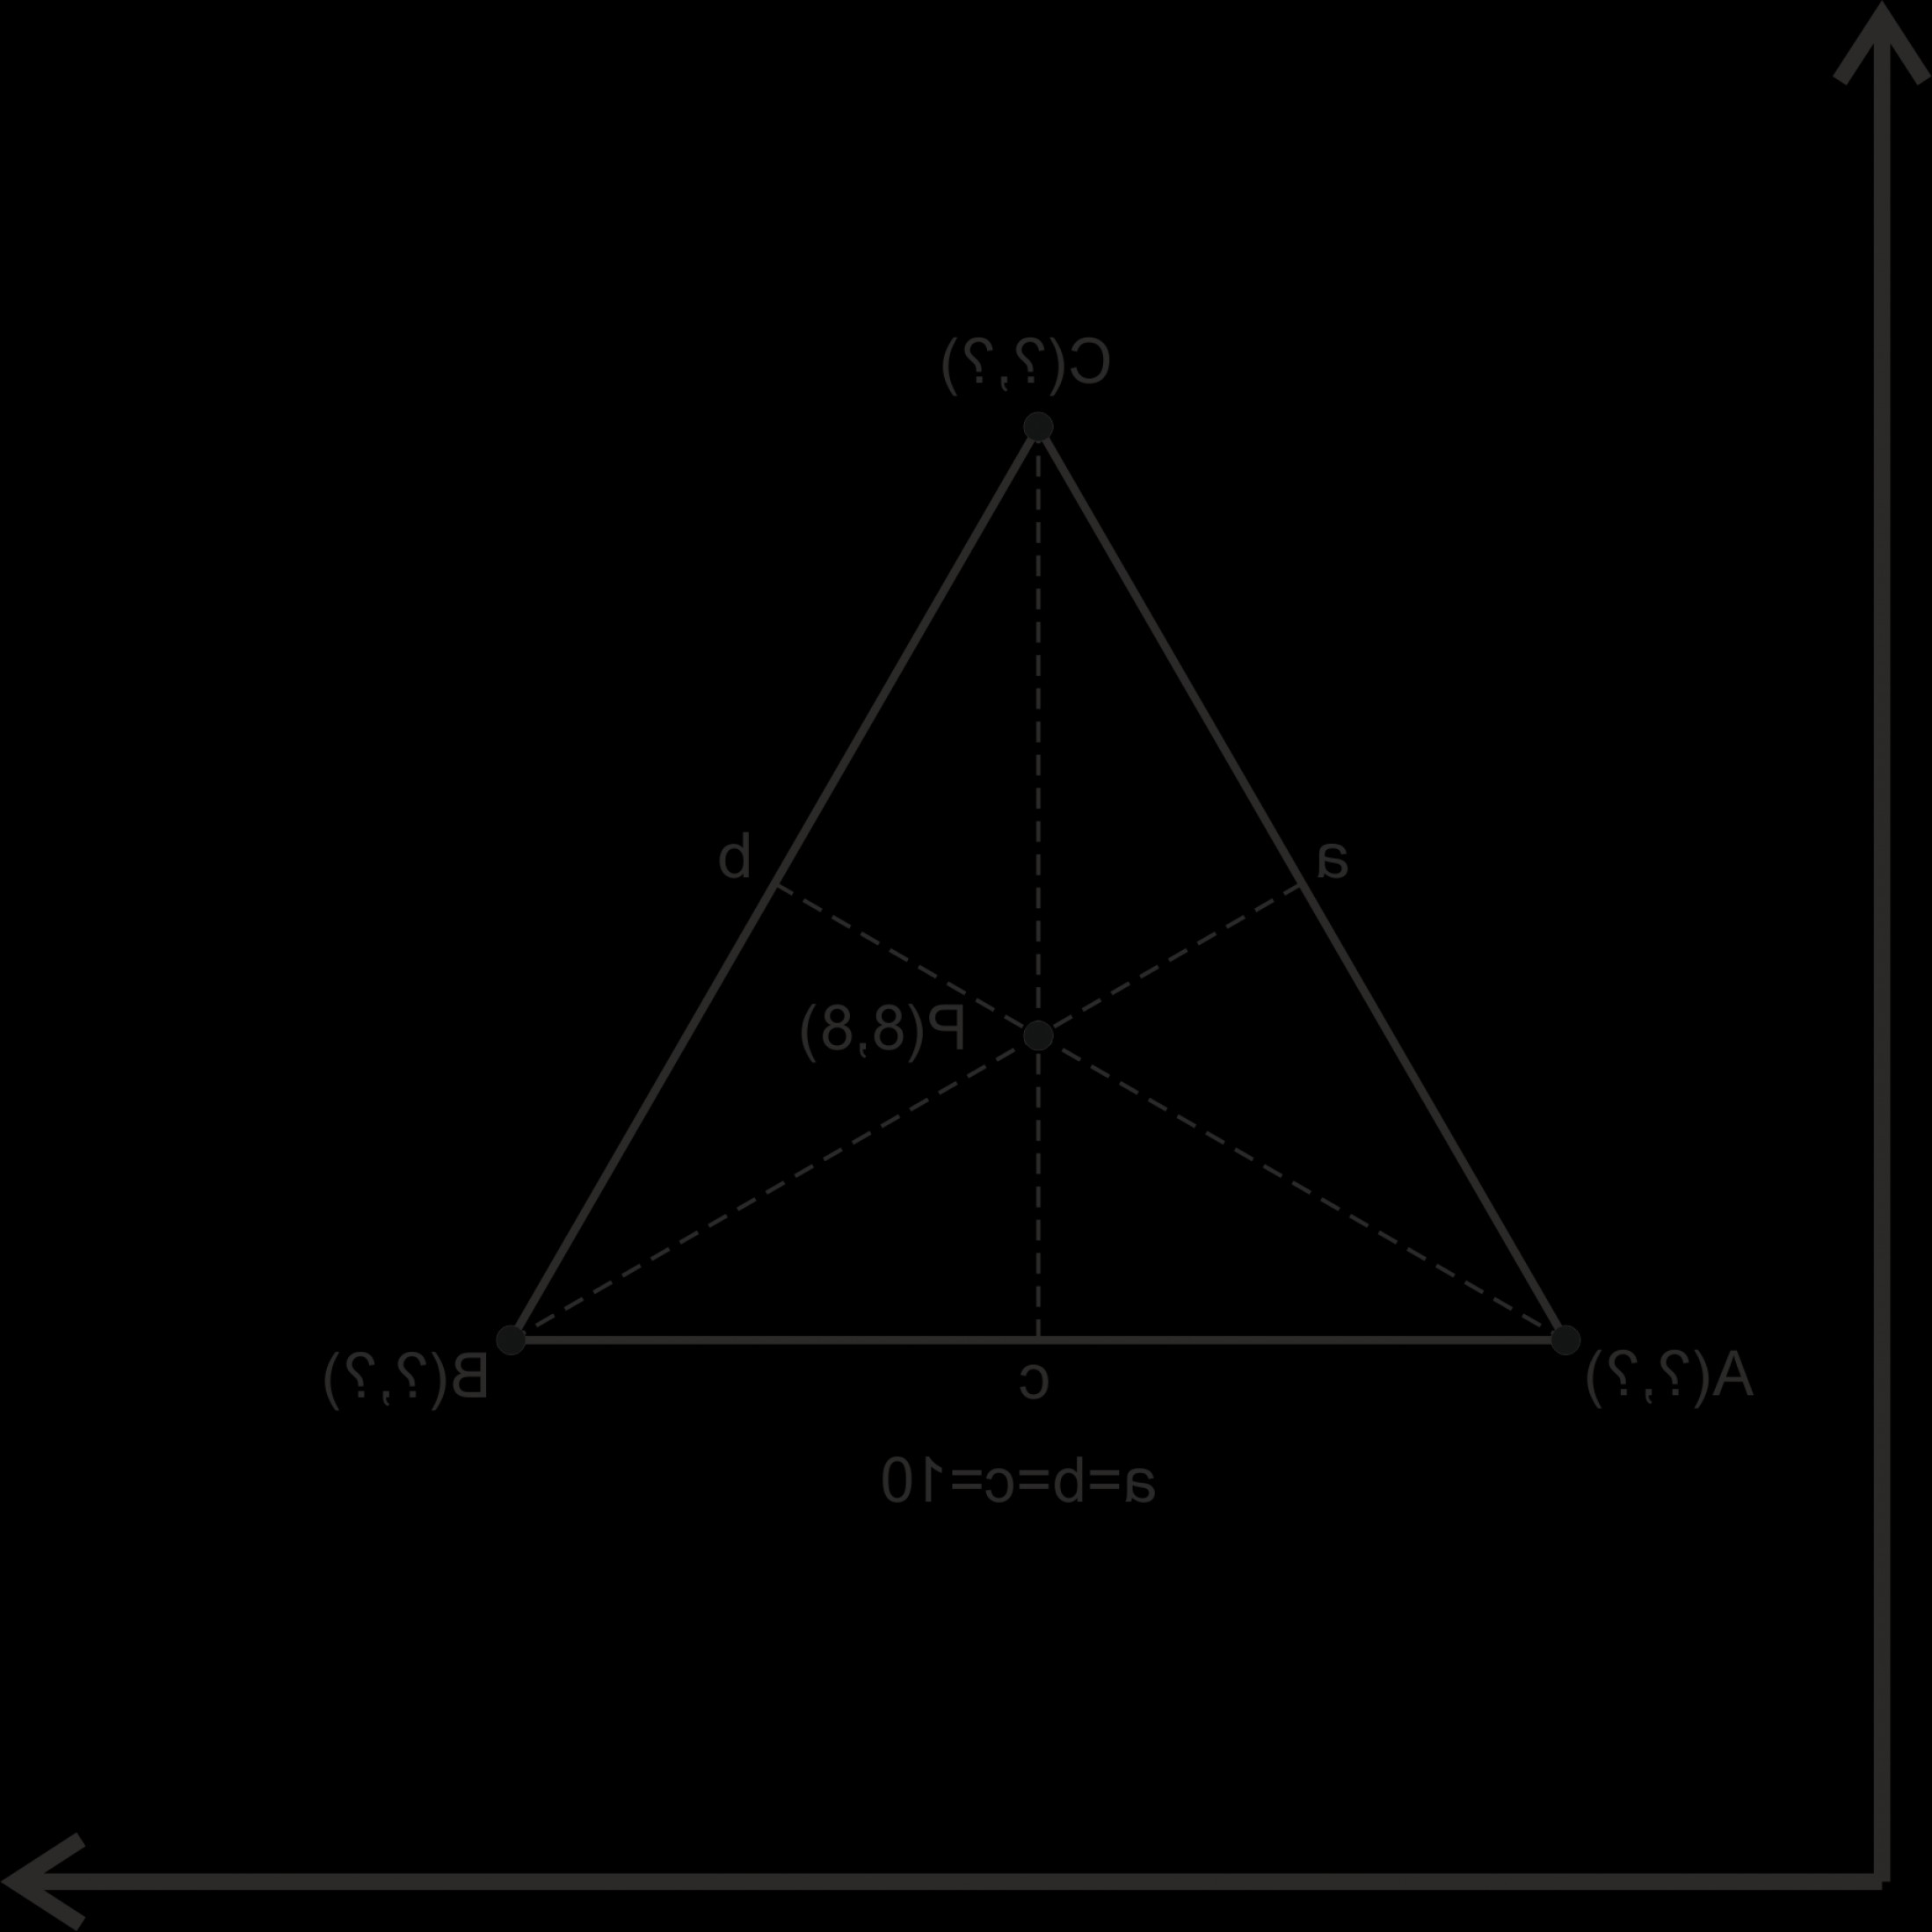 Write Vectors In Cartesian Coordinates: How To Calculate Triangle Coordinates In Cartesian Plane